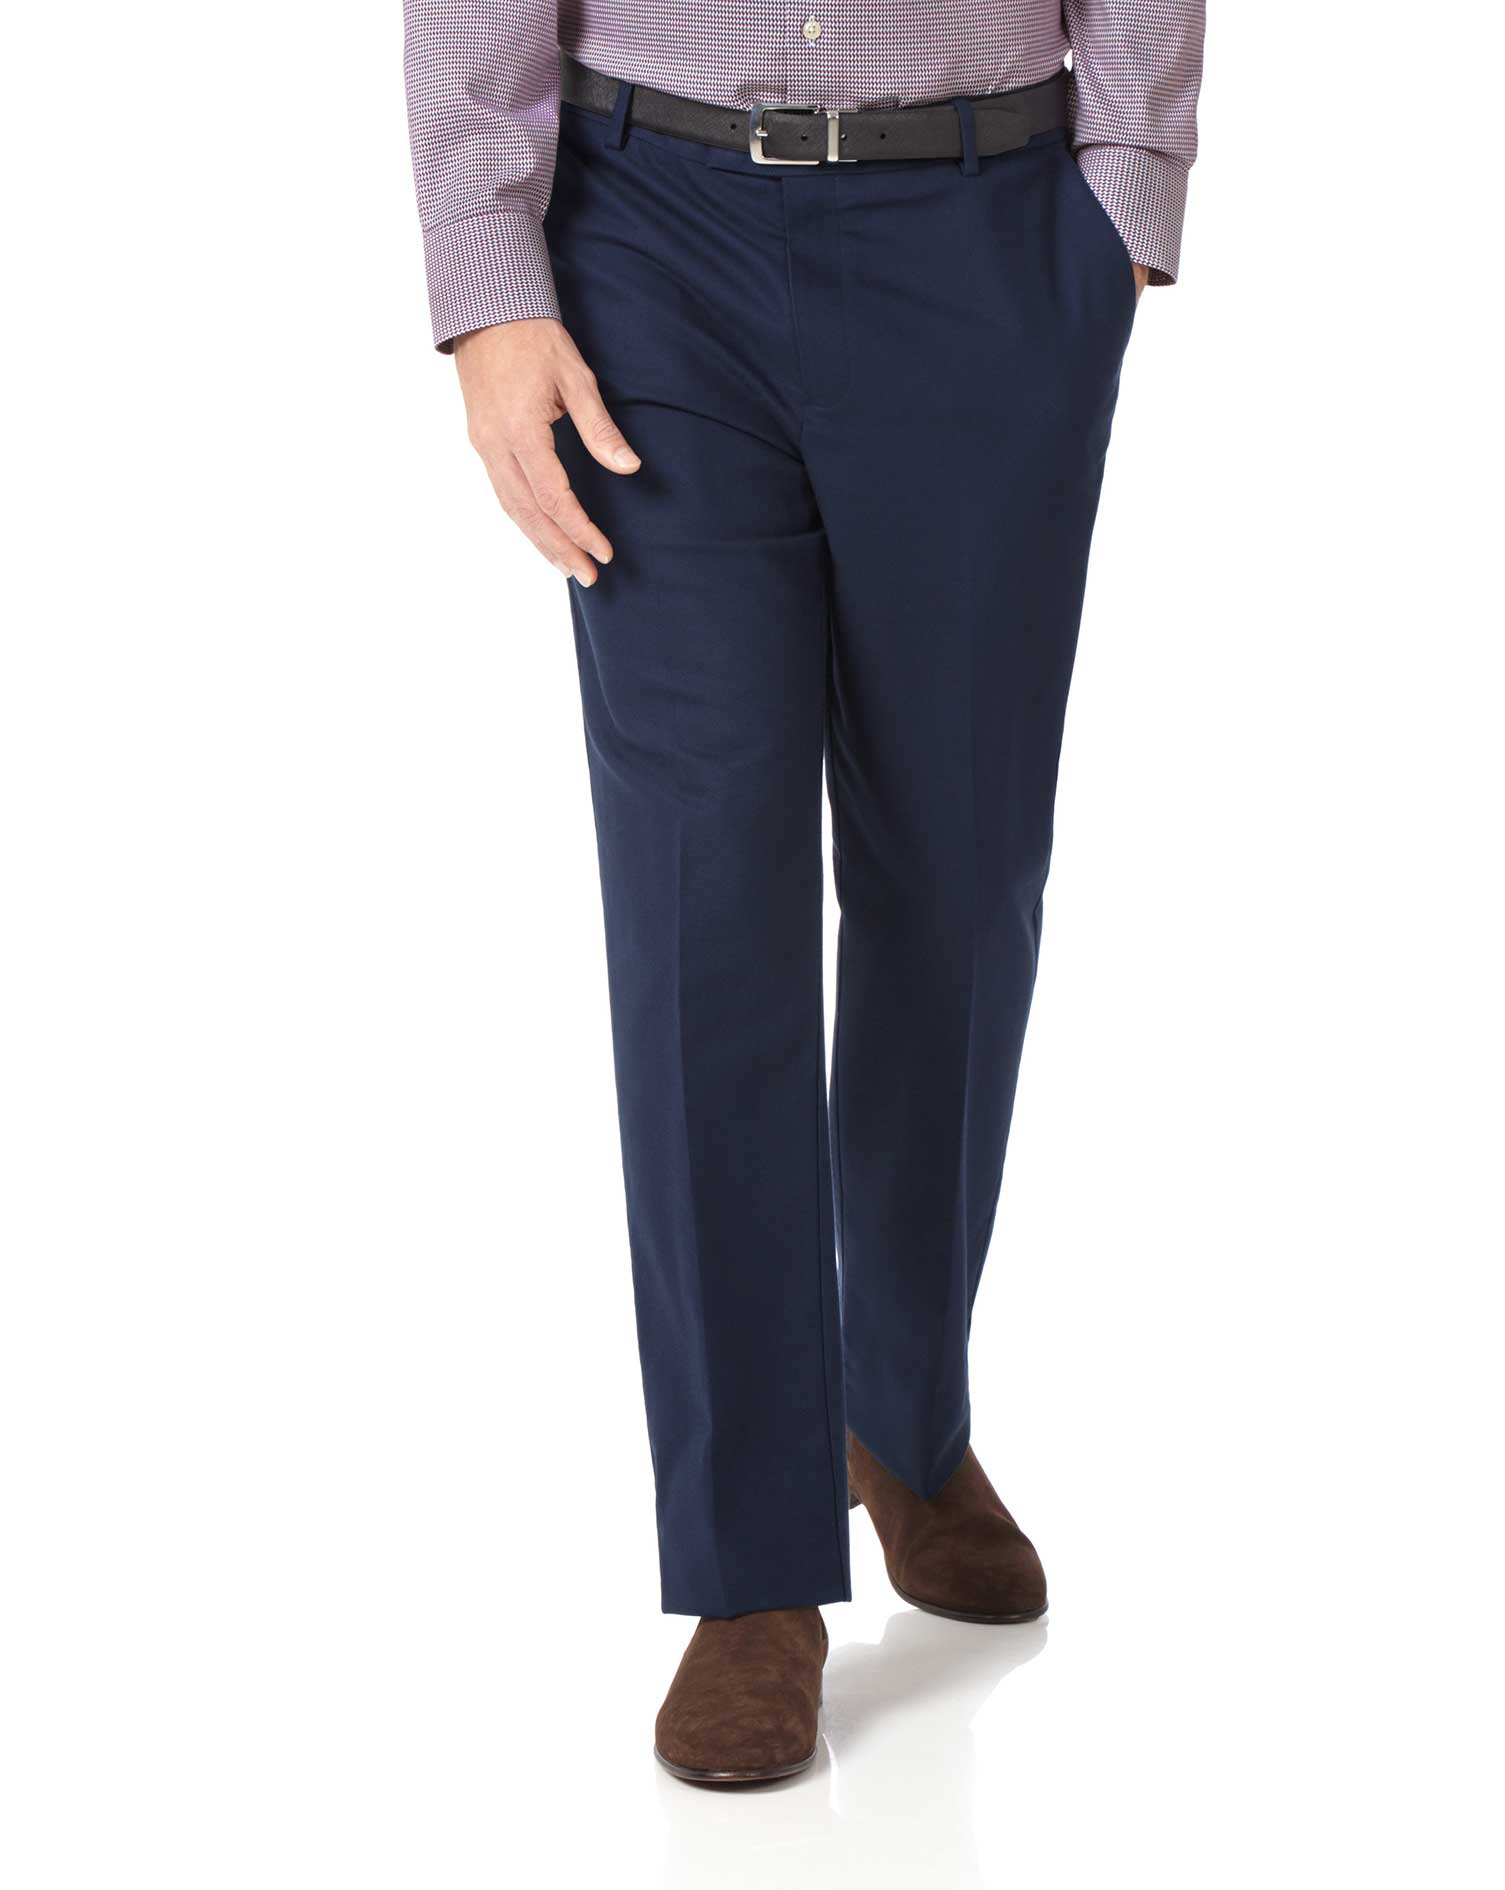 Navy Classic Fit Stretch Non-Iron Trousers Size W36 L32 by Charles Tyrwhitt